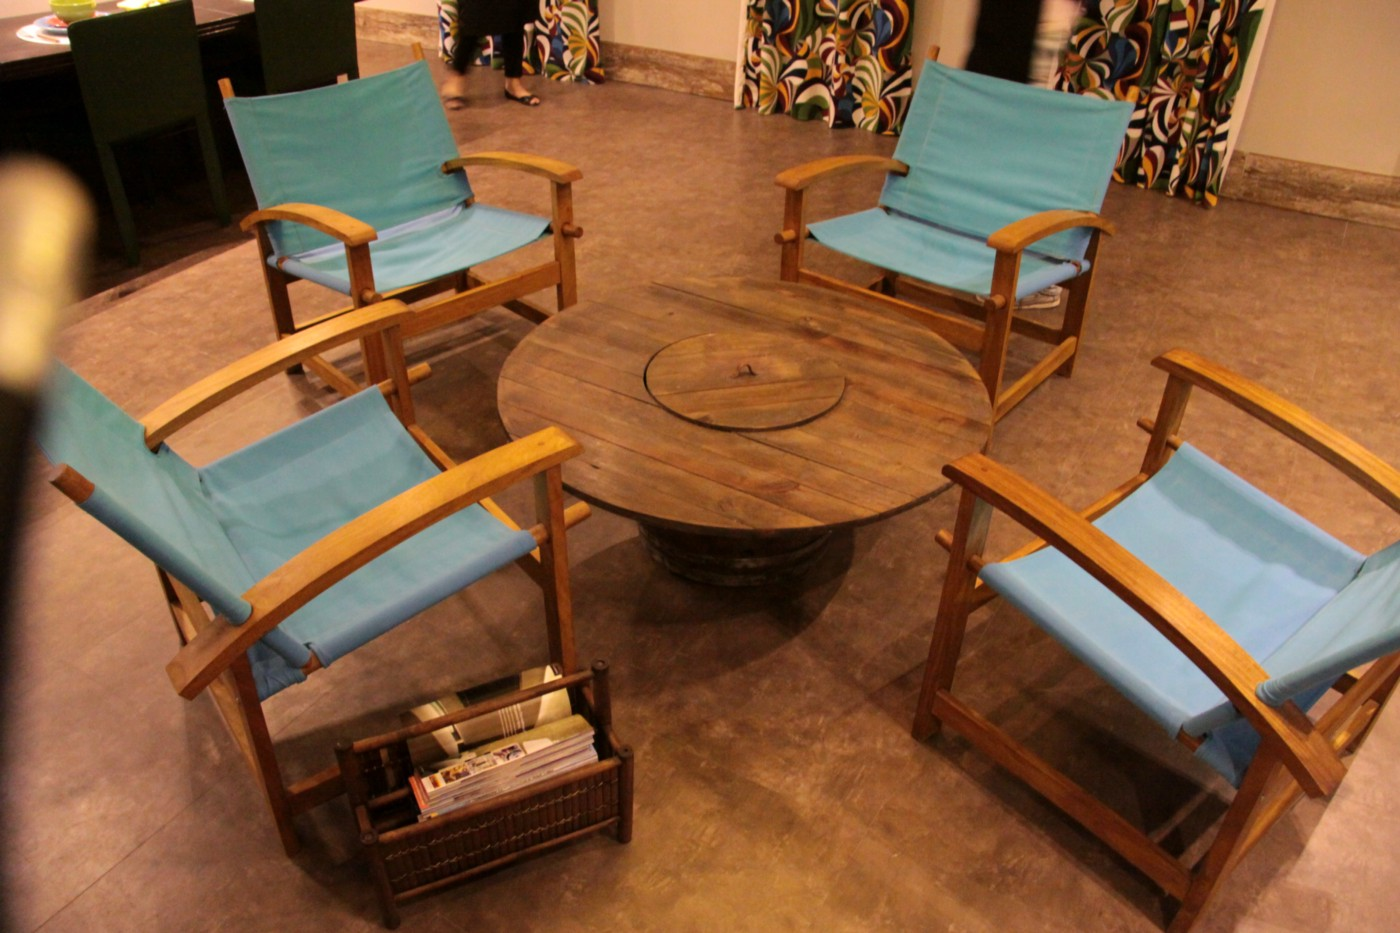 The advantages and disadvantages of custom-made furniture | by Sarah  Williams | Medium